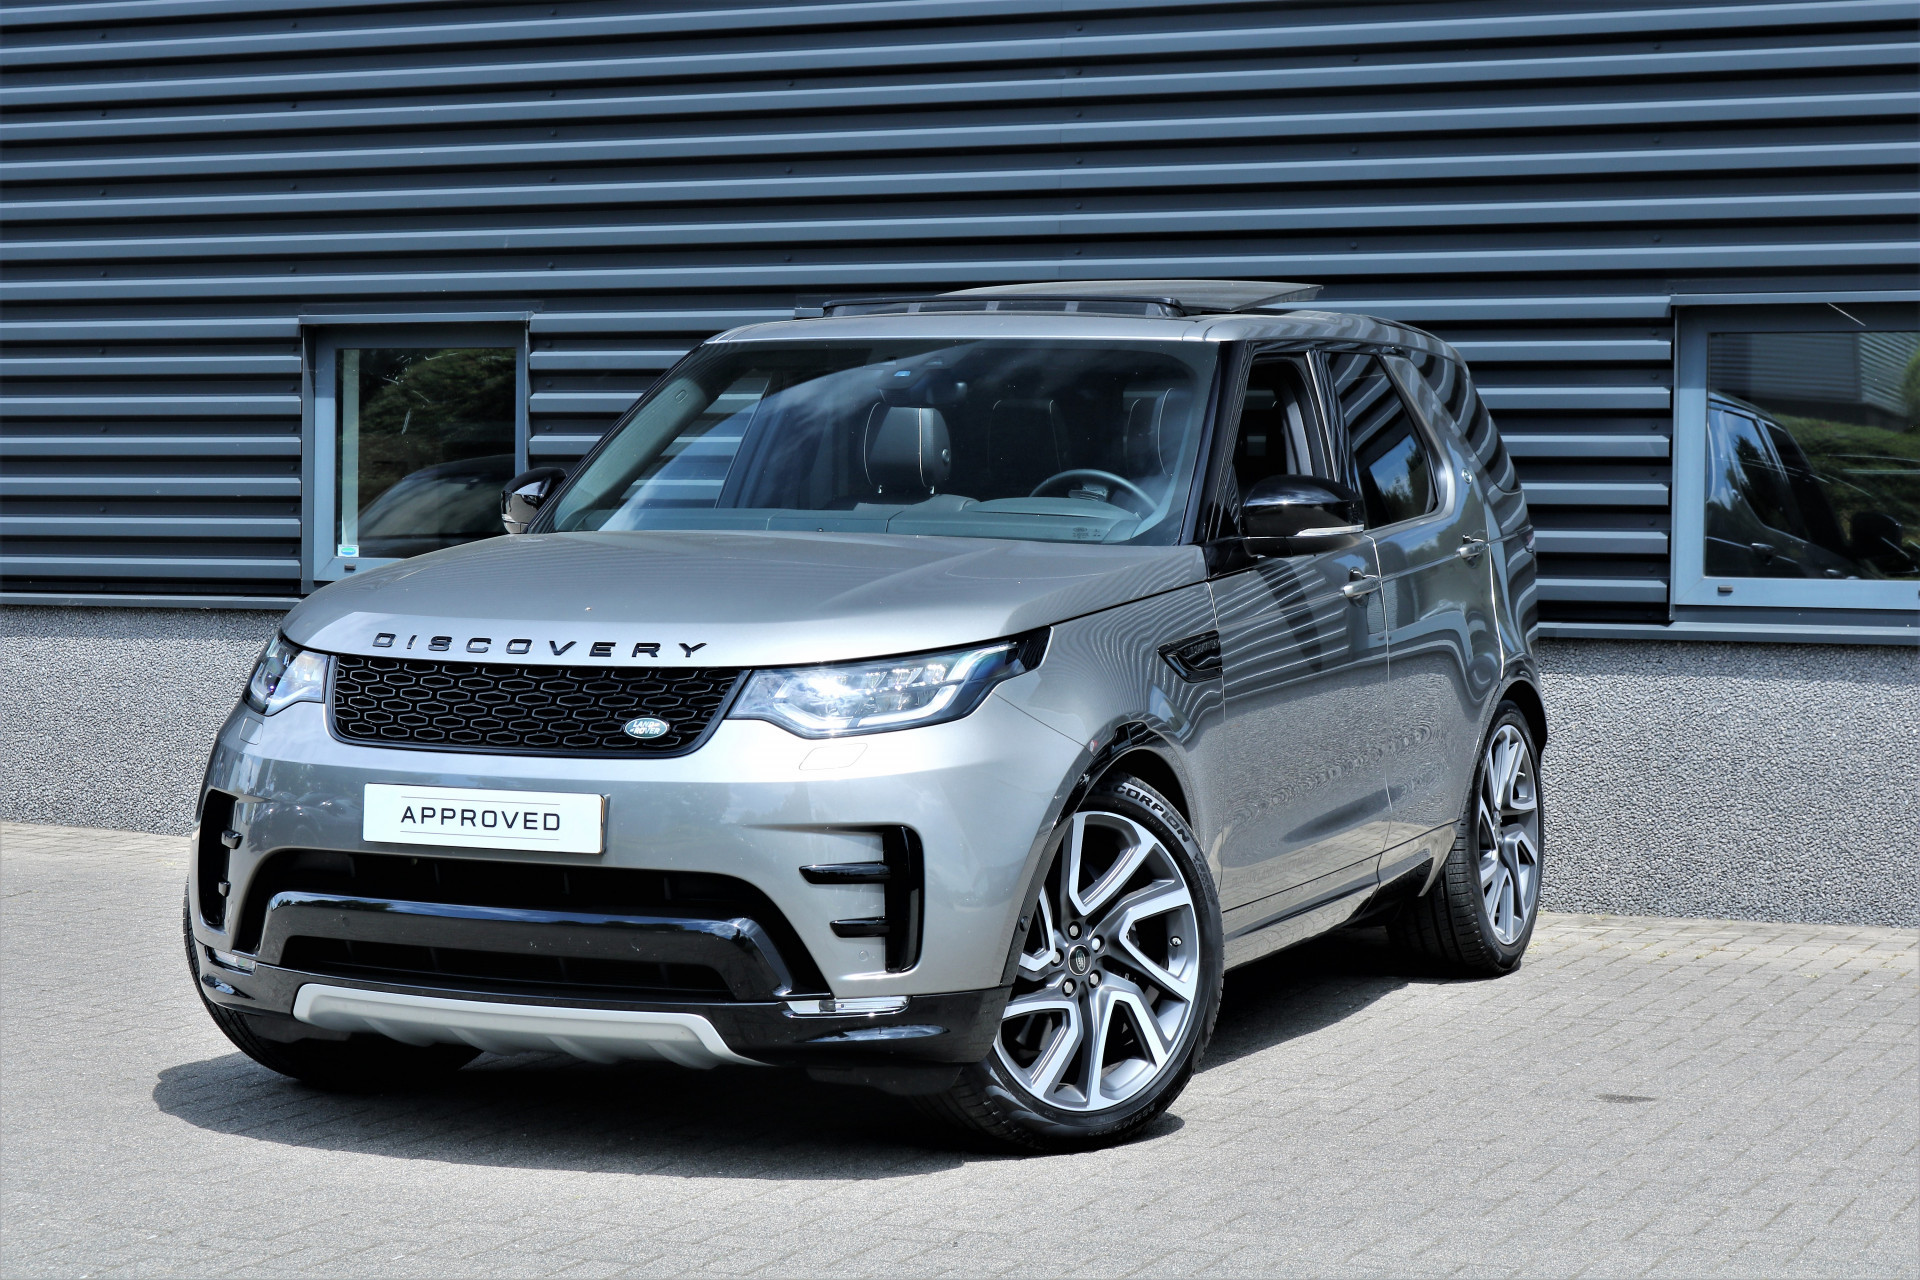 Land Rover Discovery 3.0 SDV6 306PK HSE - 7 PERSOONS - - Afbeelding 1